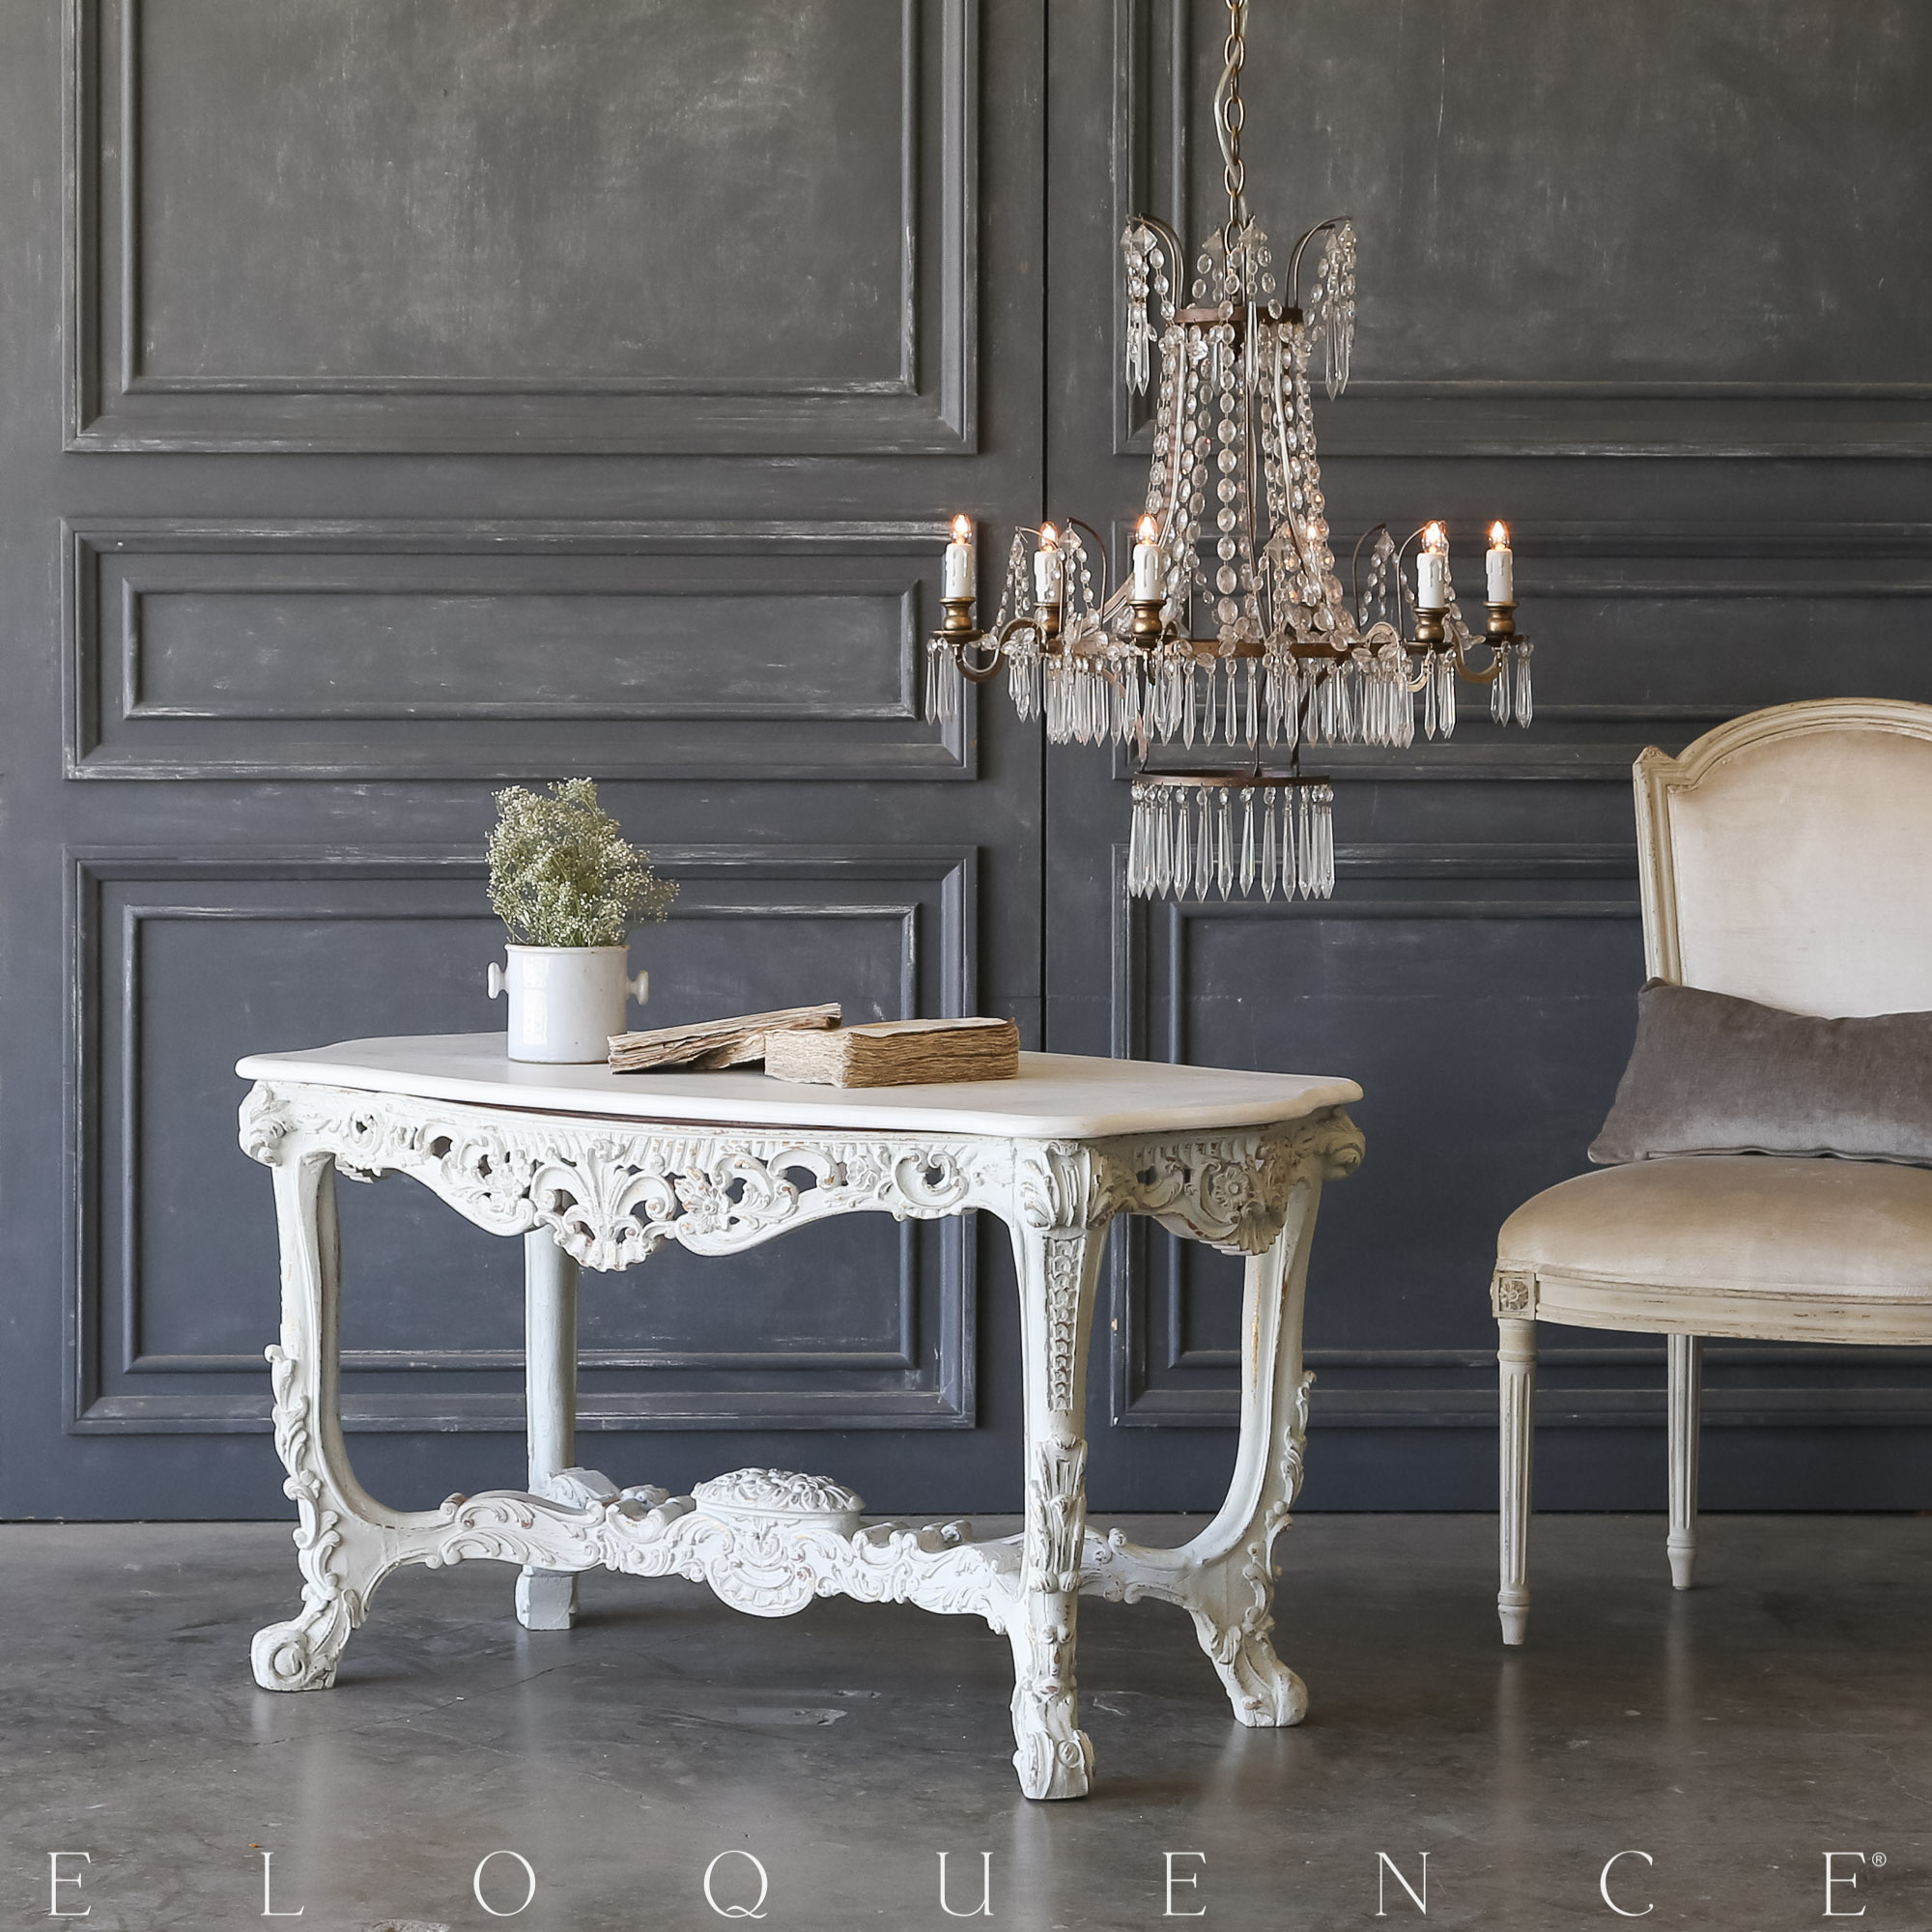 Eloquence® Vintage Ornate French Blue Coffee Table: 1940